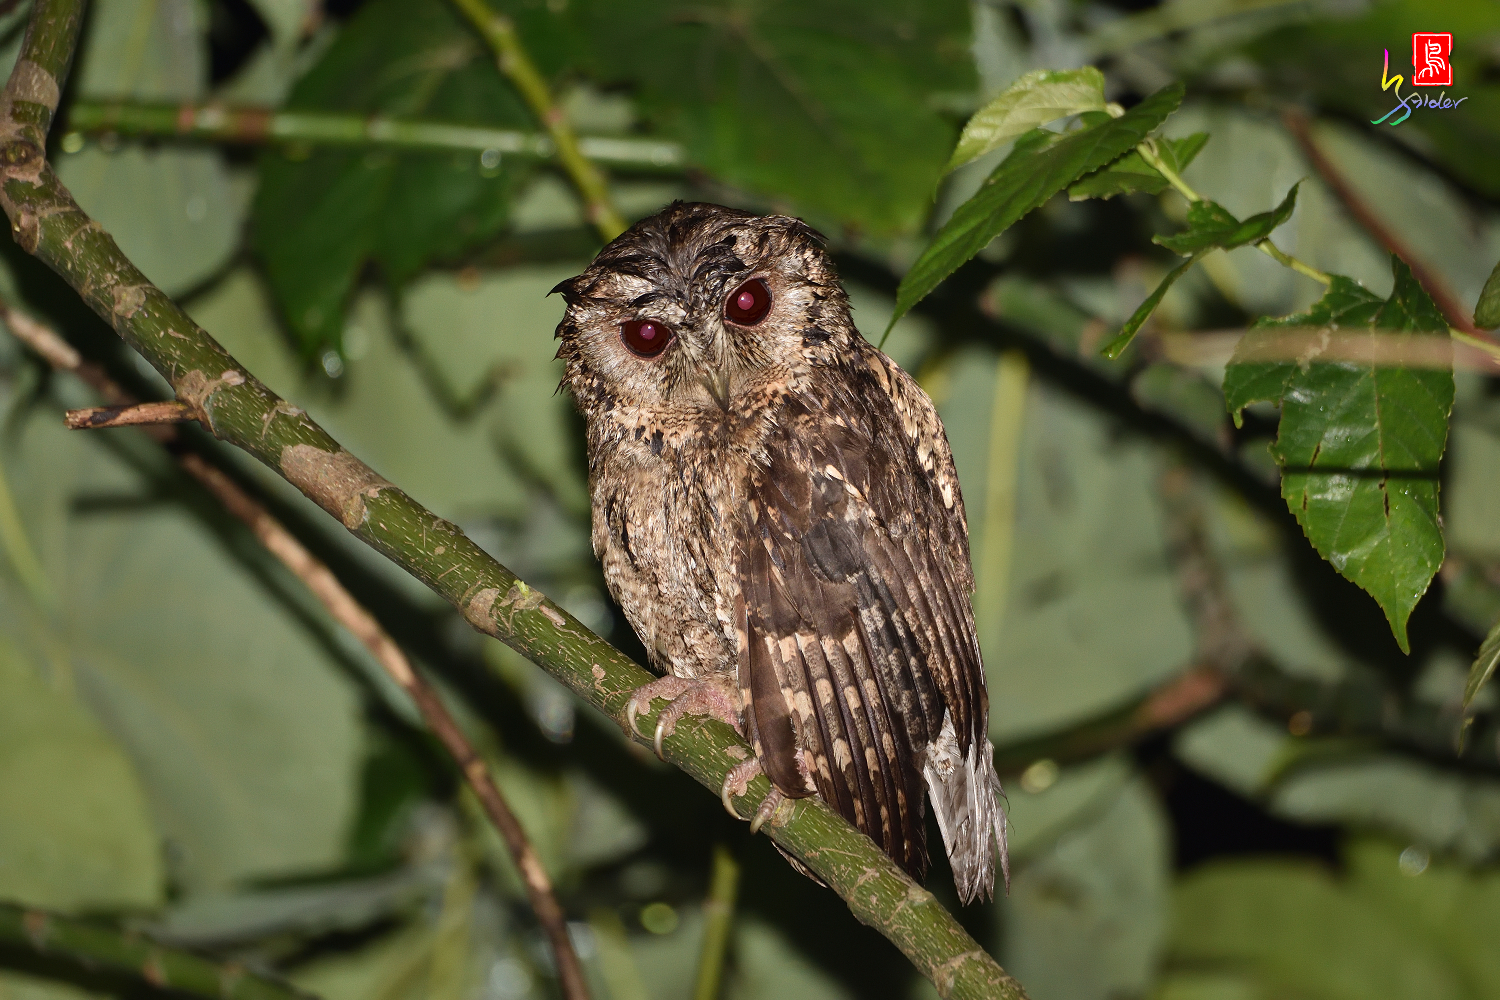 Collard_Scops_Owl_1522